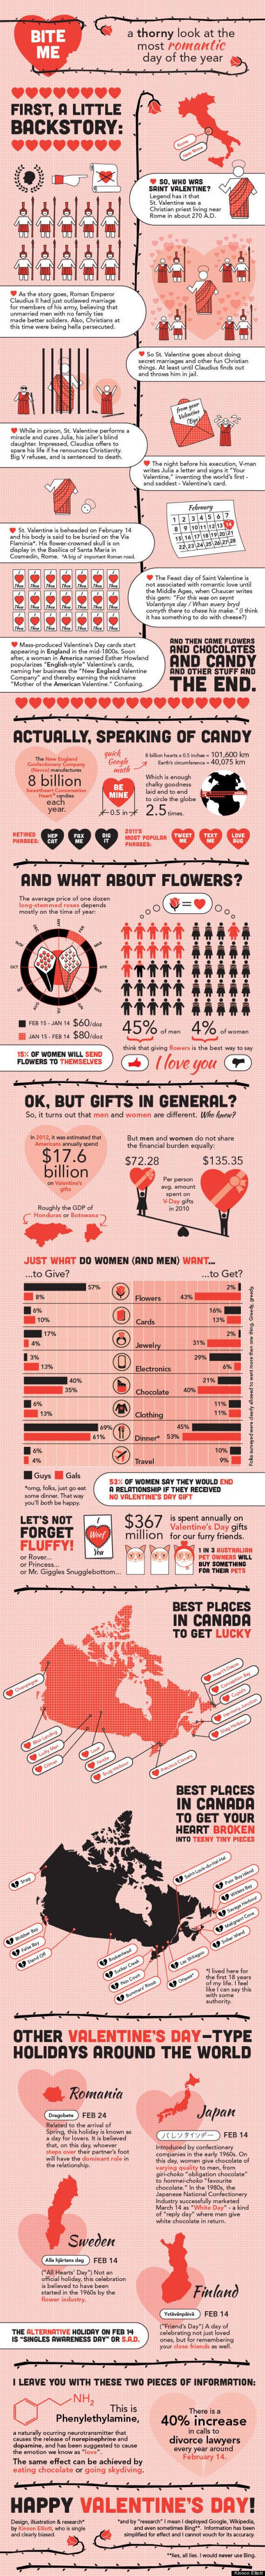 Valentine's Day Facts: Kinnon Elliott's Infographic Gives You The Lowdown On Love